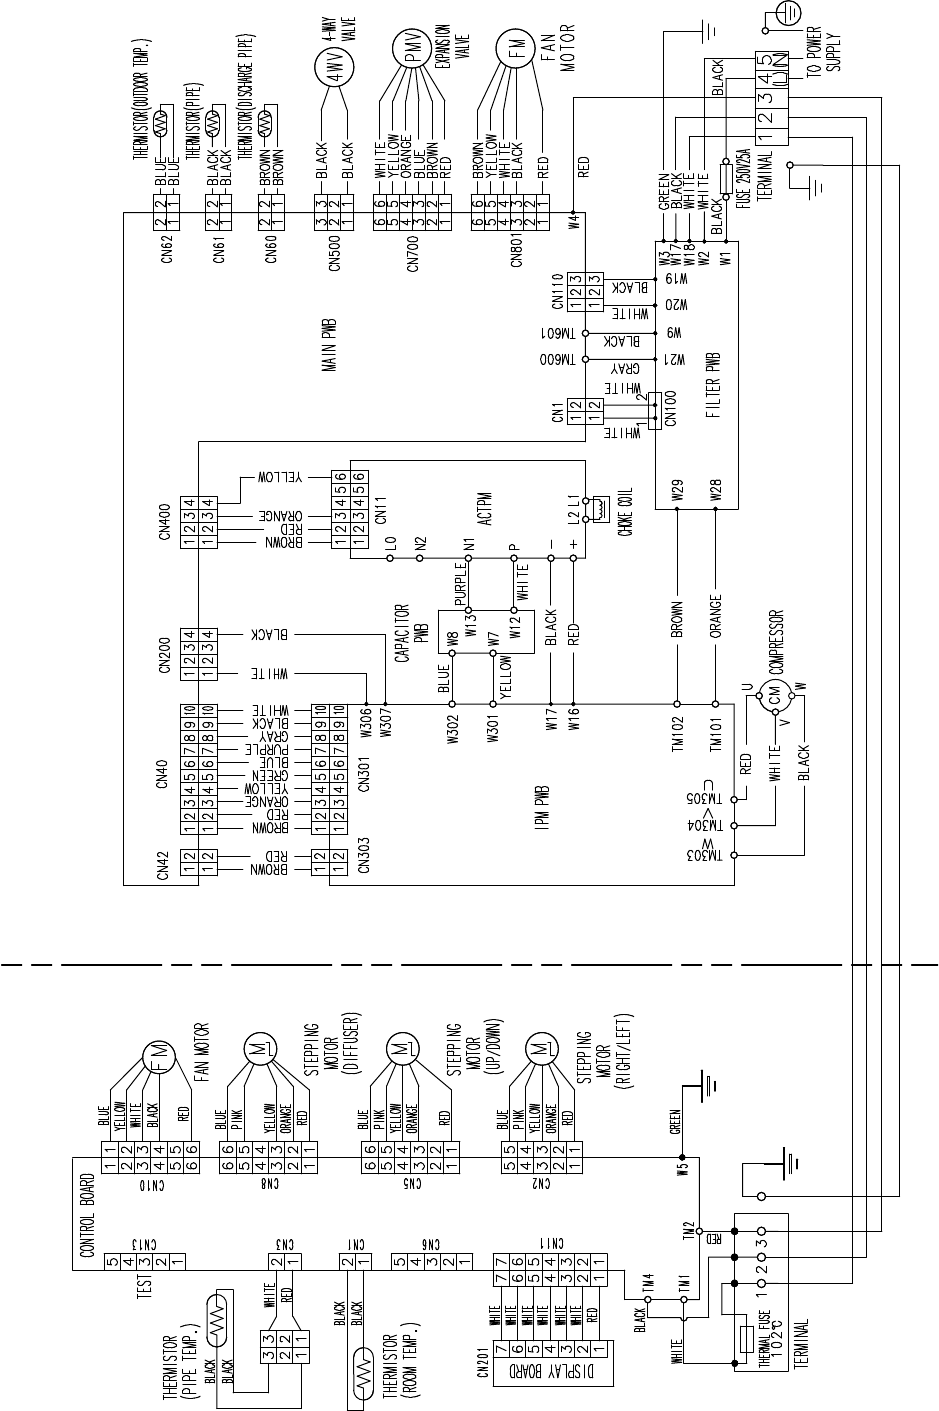 896ecdac 013b 4fa8 b569 aef9ae0e5fd5 bg5 page 5 of fujitsu air conditioner aoyr24lcc user guide fujitsu ductless split installation manual at nearapp.co